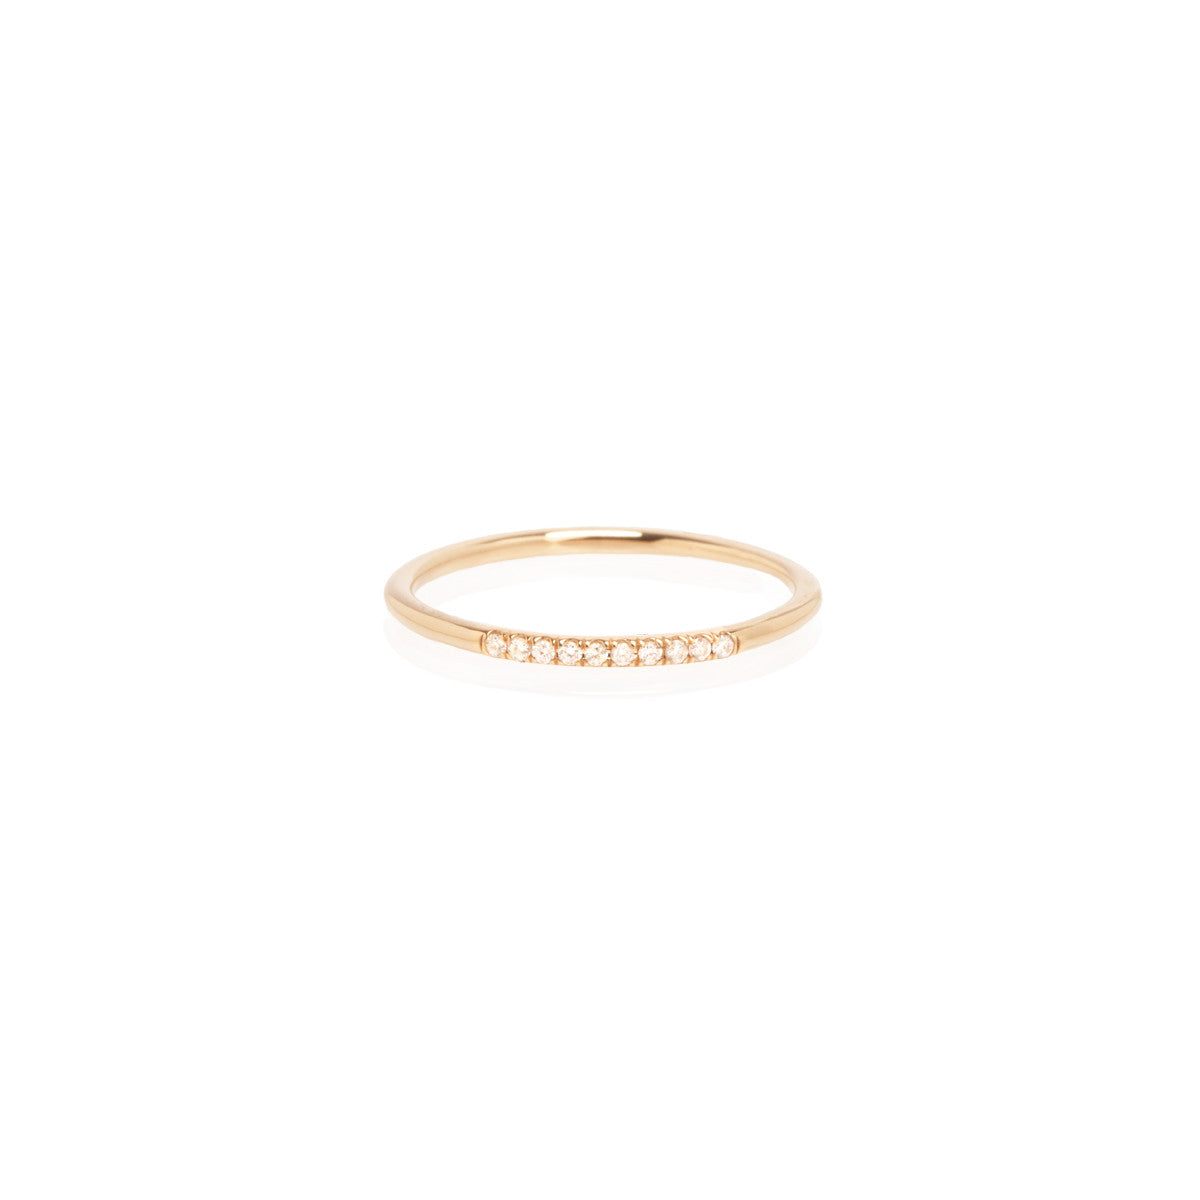 Zoë Chicco 14kt Yellow Gold 10 White Diamond Pave Stacking Band Ring